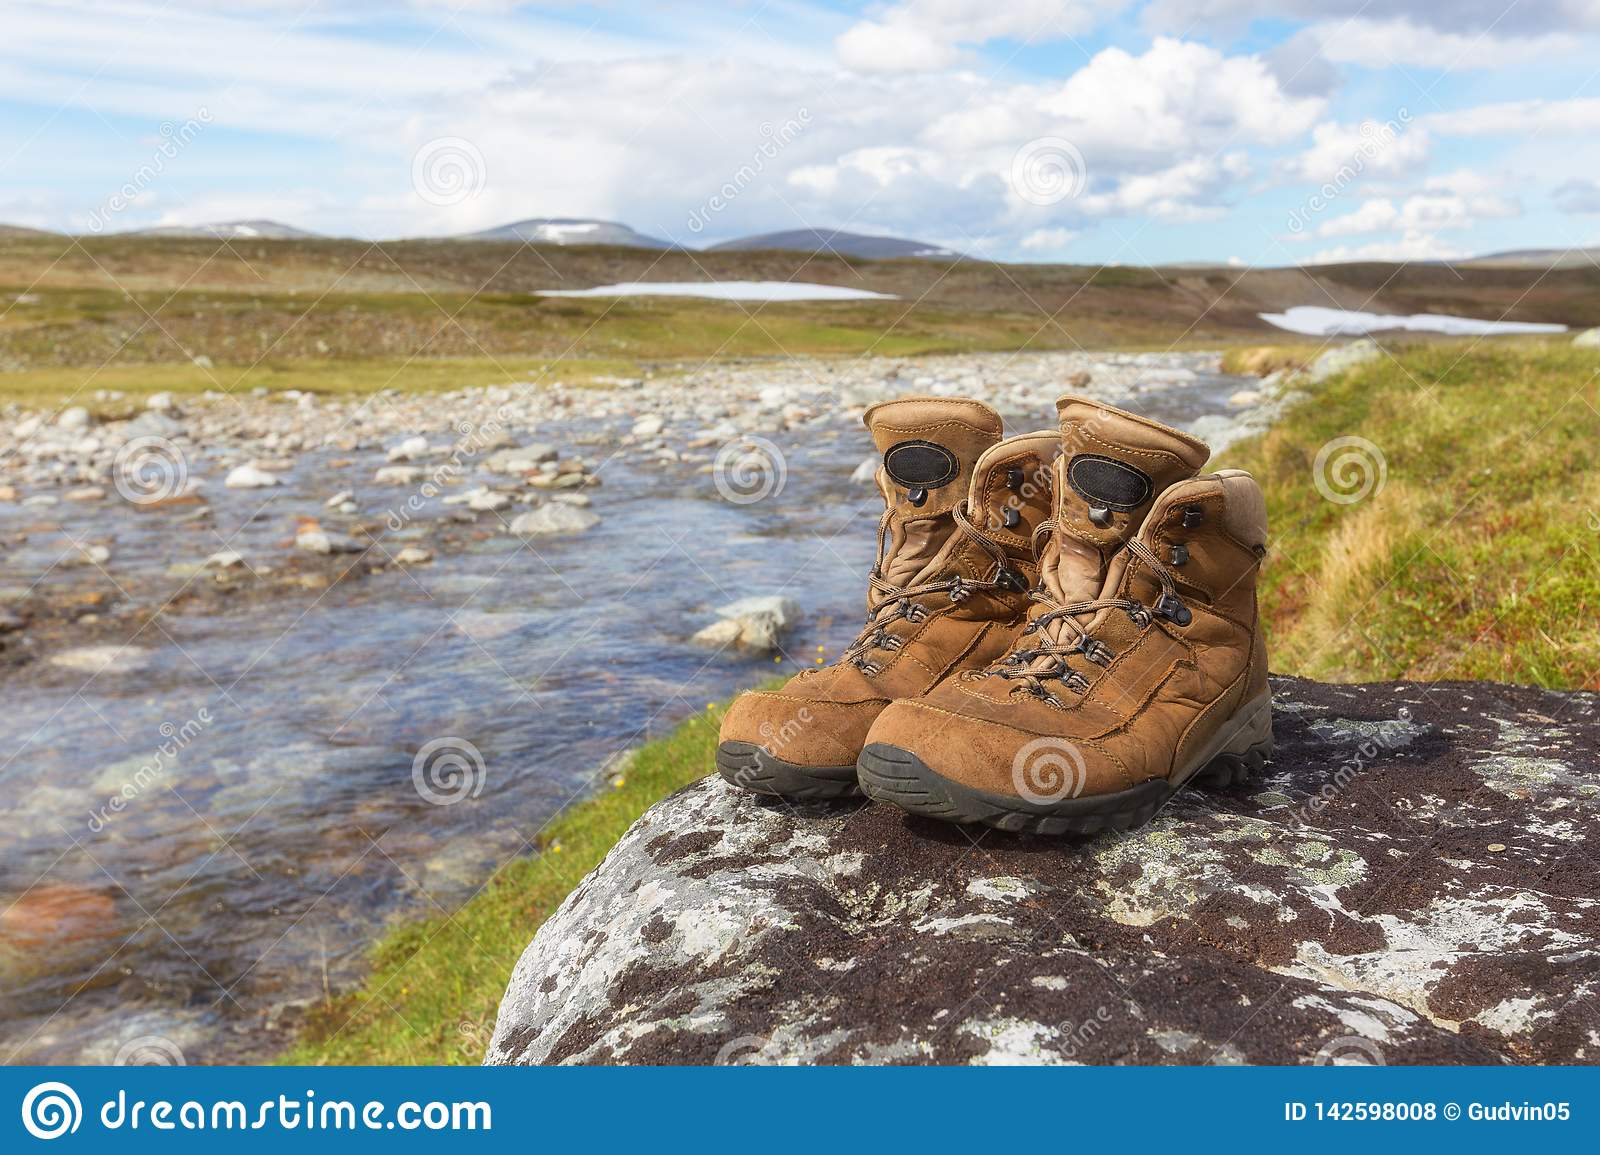 Hiking shoes of a hiker on a rock